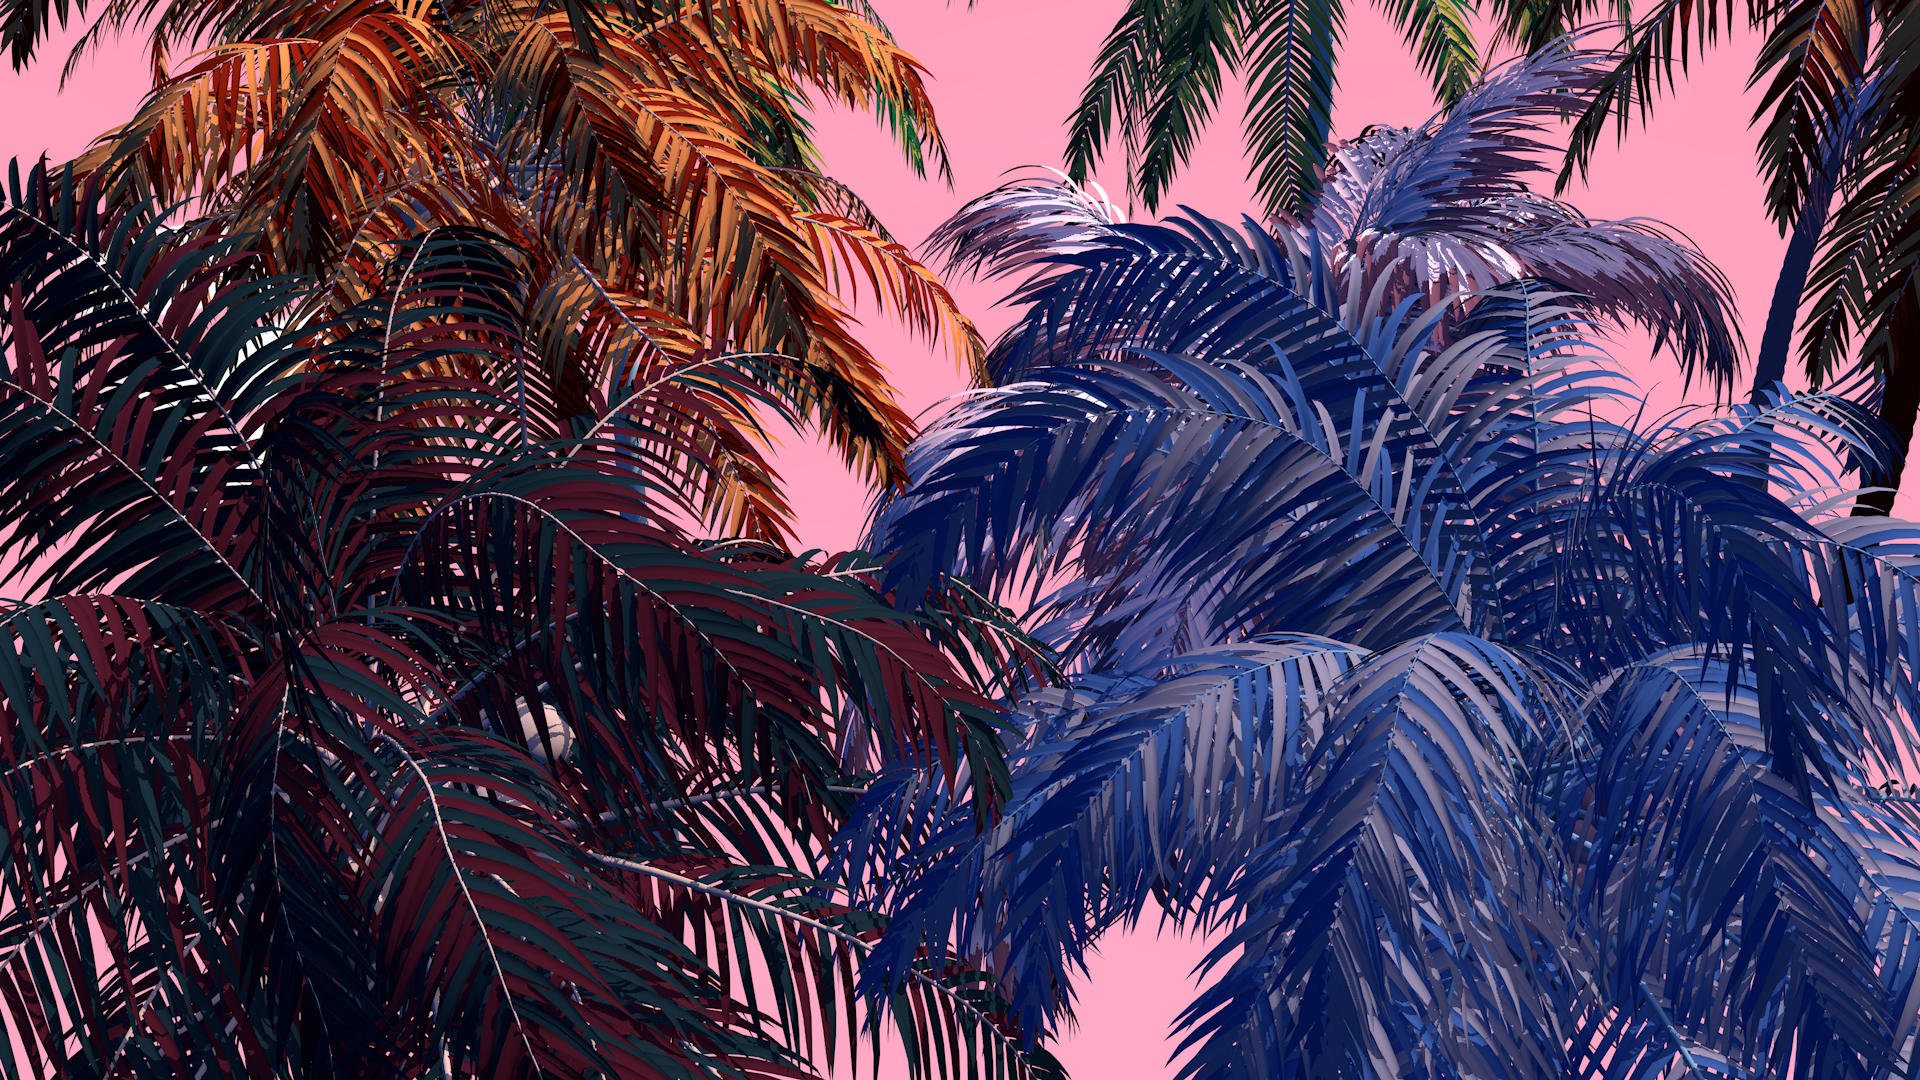 landscape6_palm_zoomIn_0000